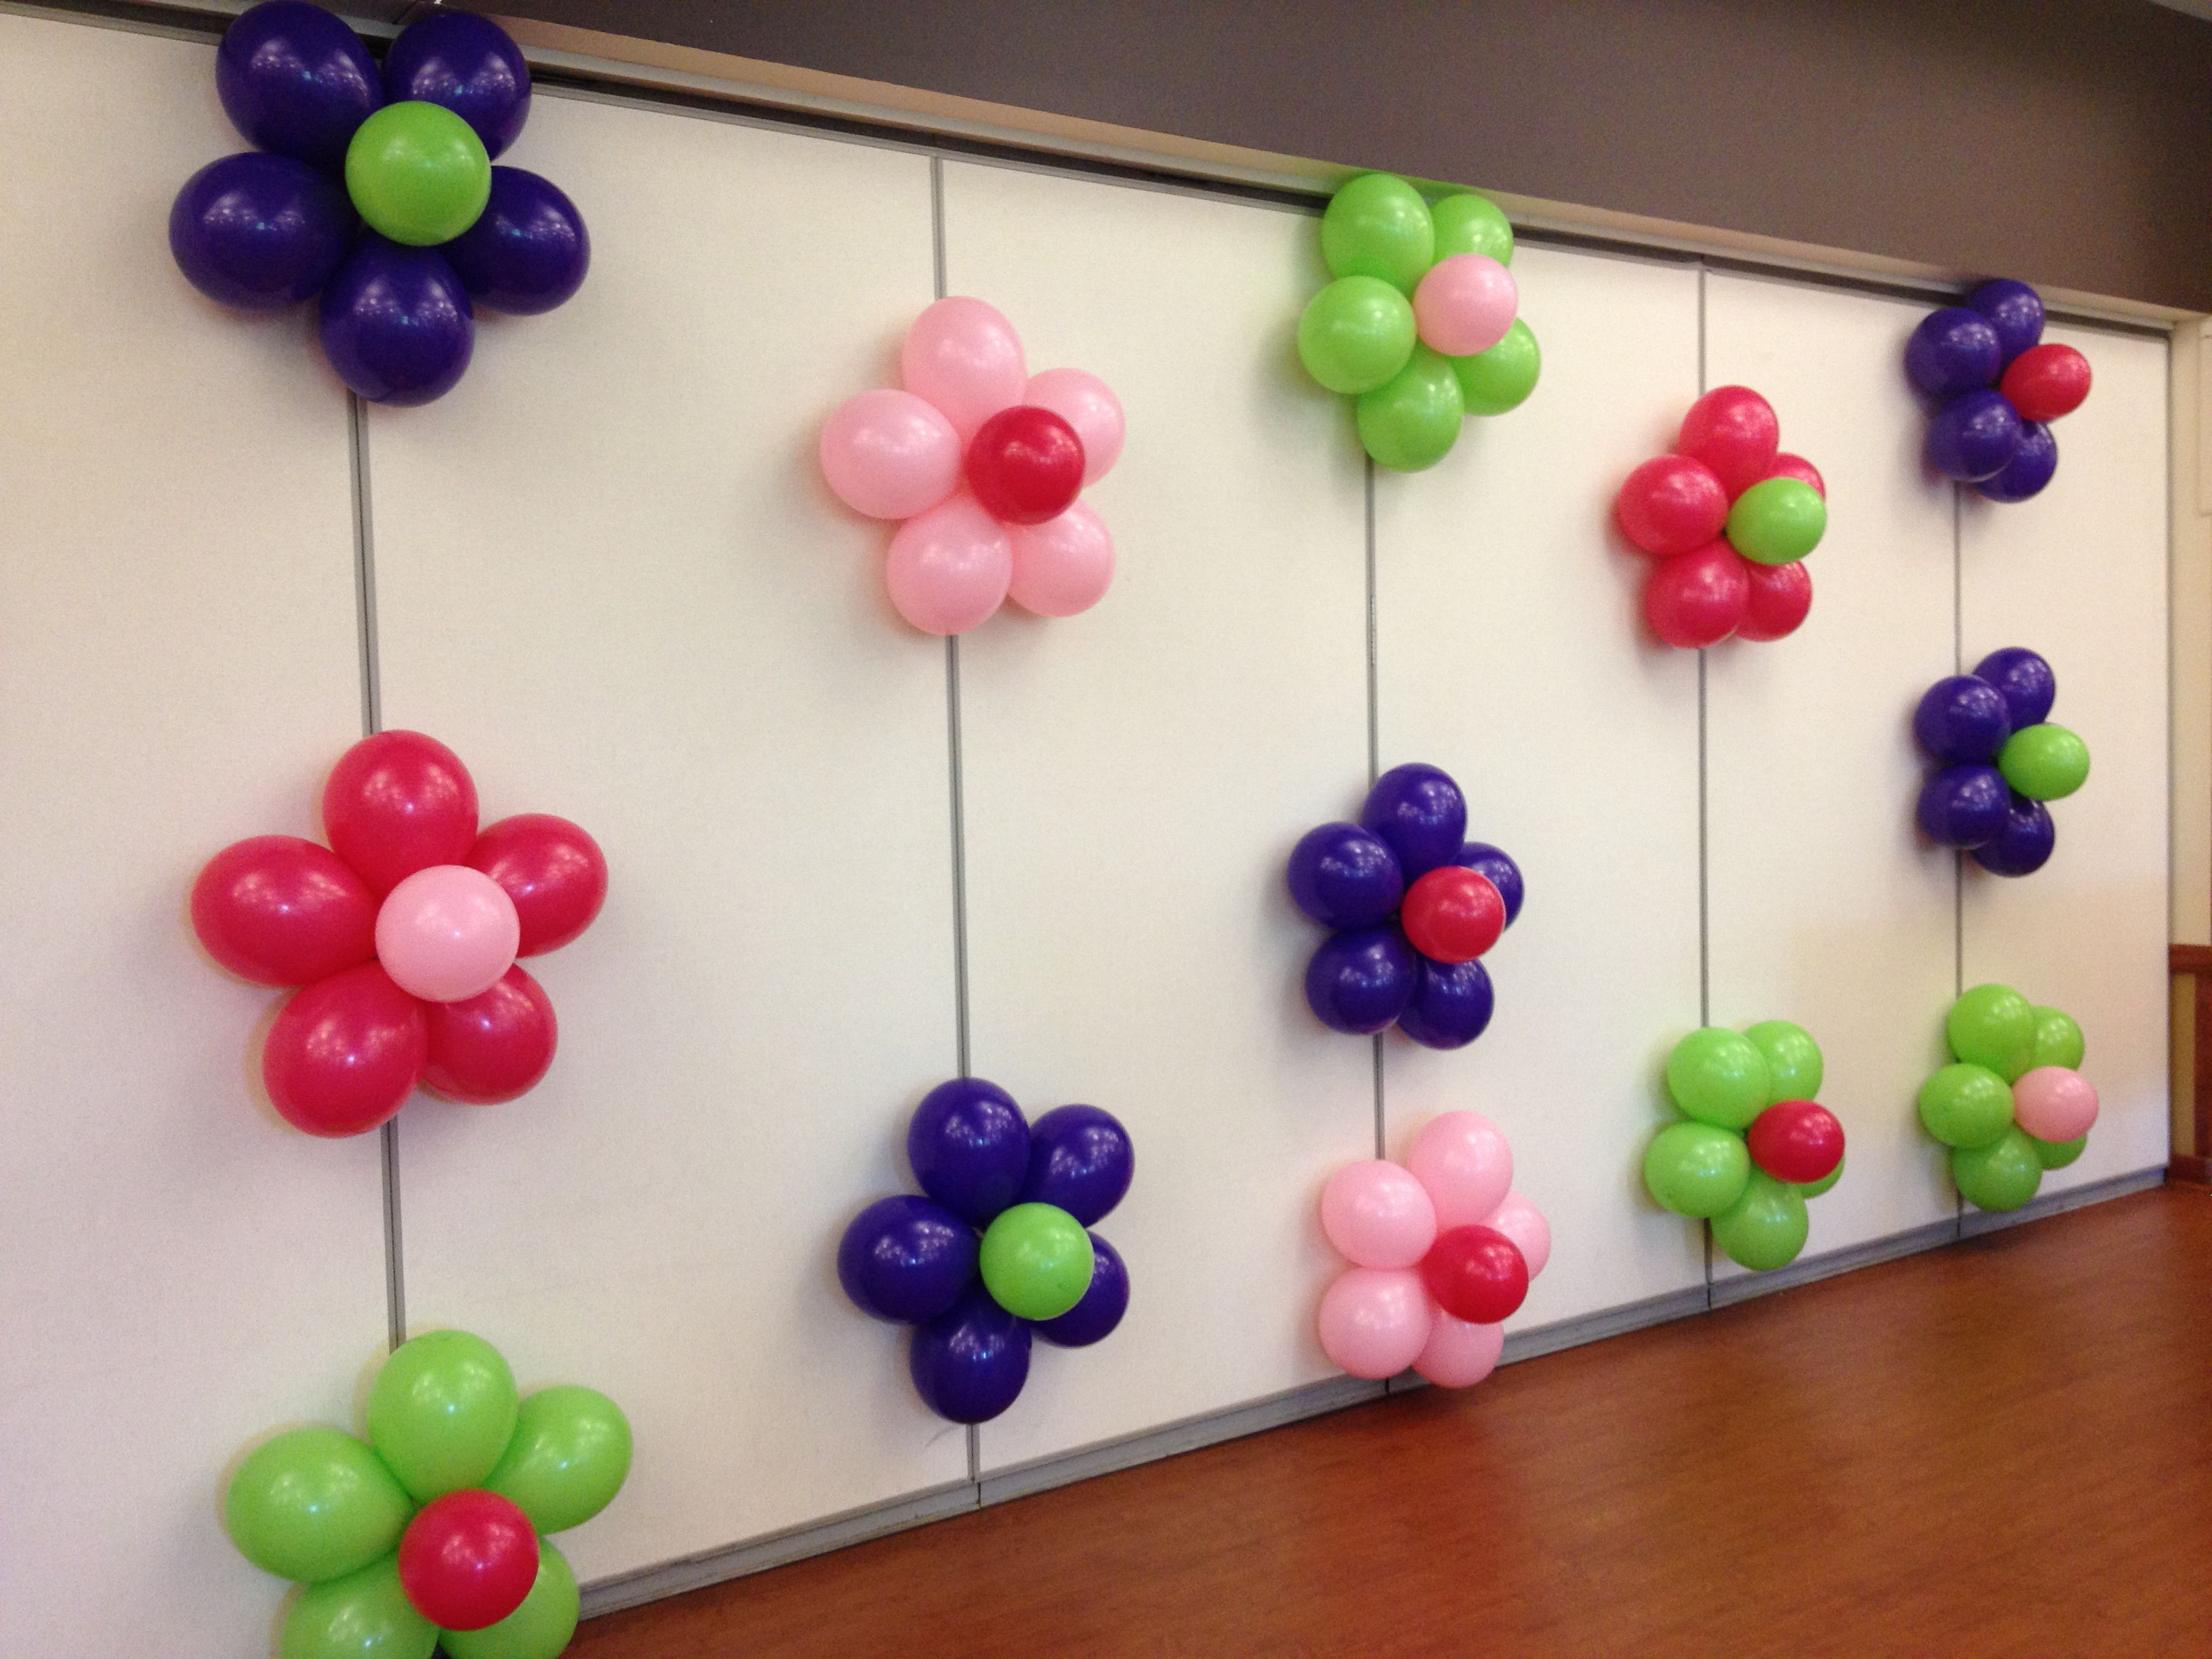 Balloon Flower Wall Decoration : Share